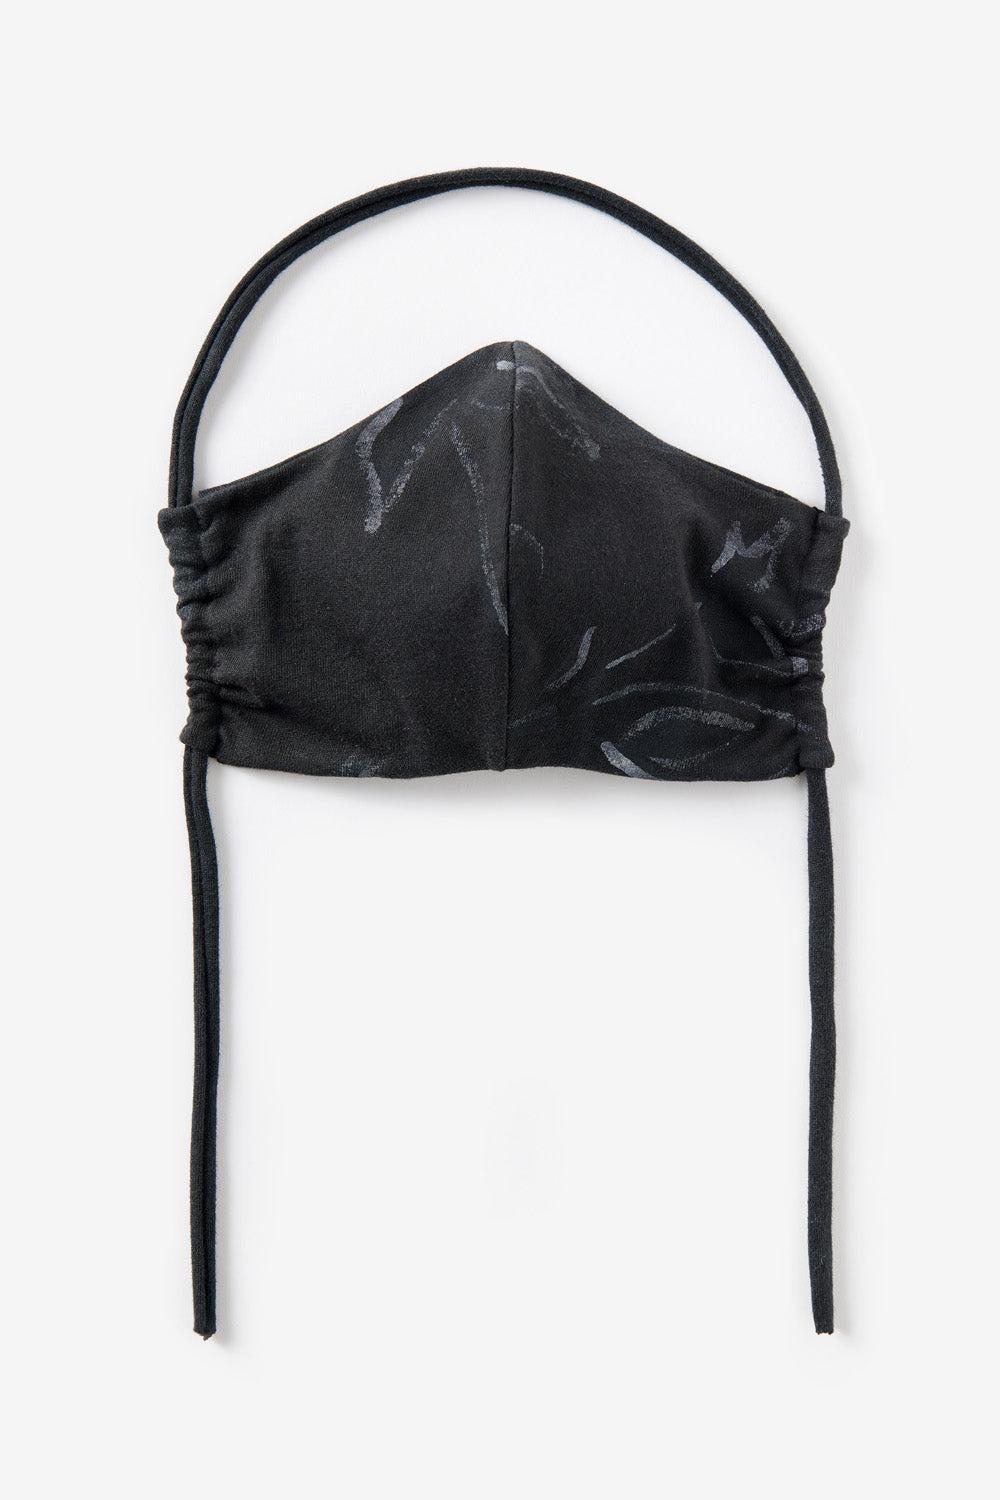 Alabama Chanin The Florence Face Mask Organic Cotton Fashion Mask with Jersey Tie in Black